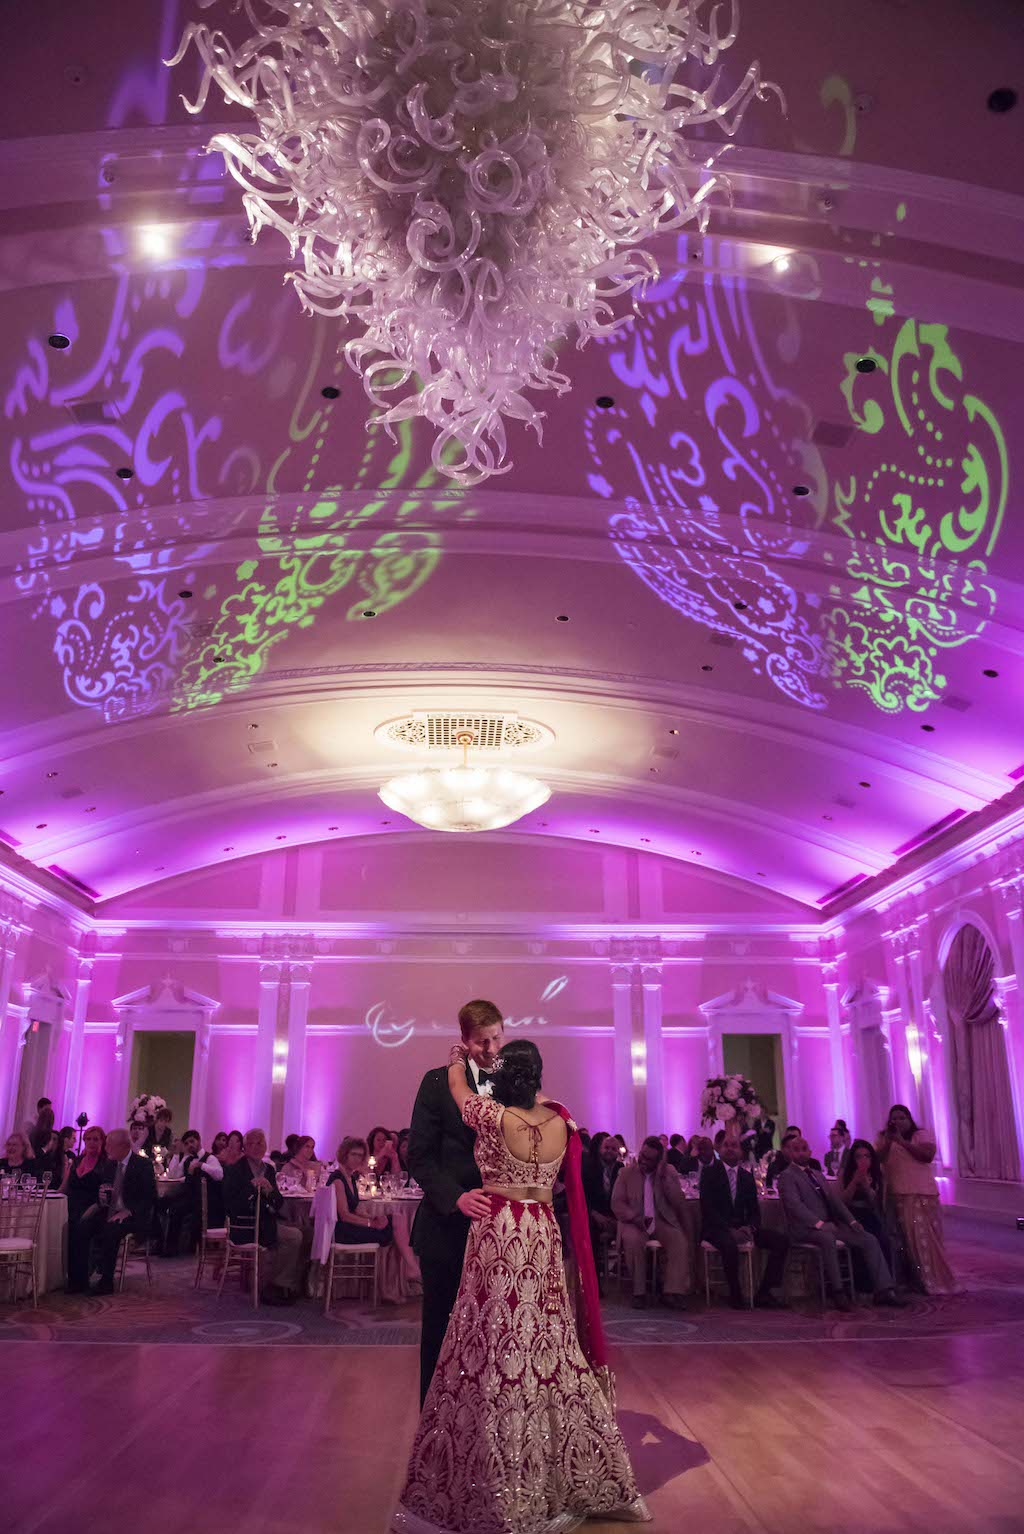 Multicultural Indian Ballroom Wedding with Purple Uplighting and GOBO | Bride and Groom First Dance Portrait | Tampa Bay Wedding Venue The Vinoy Renaissance